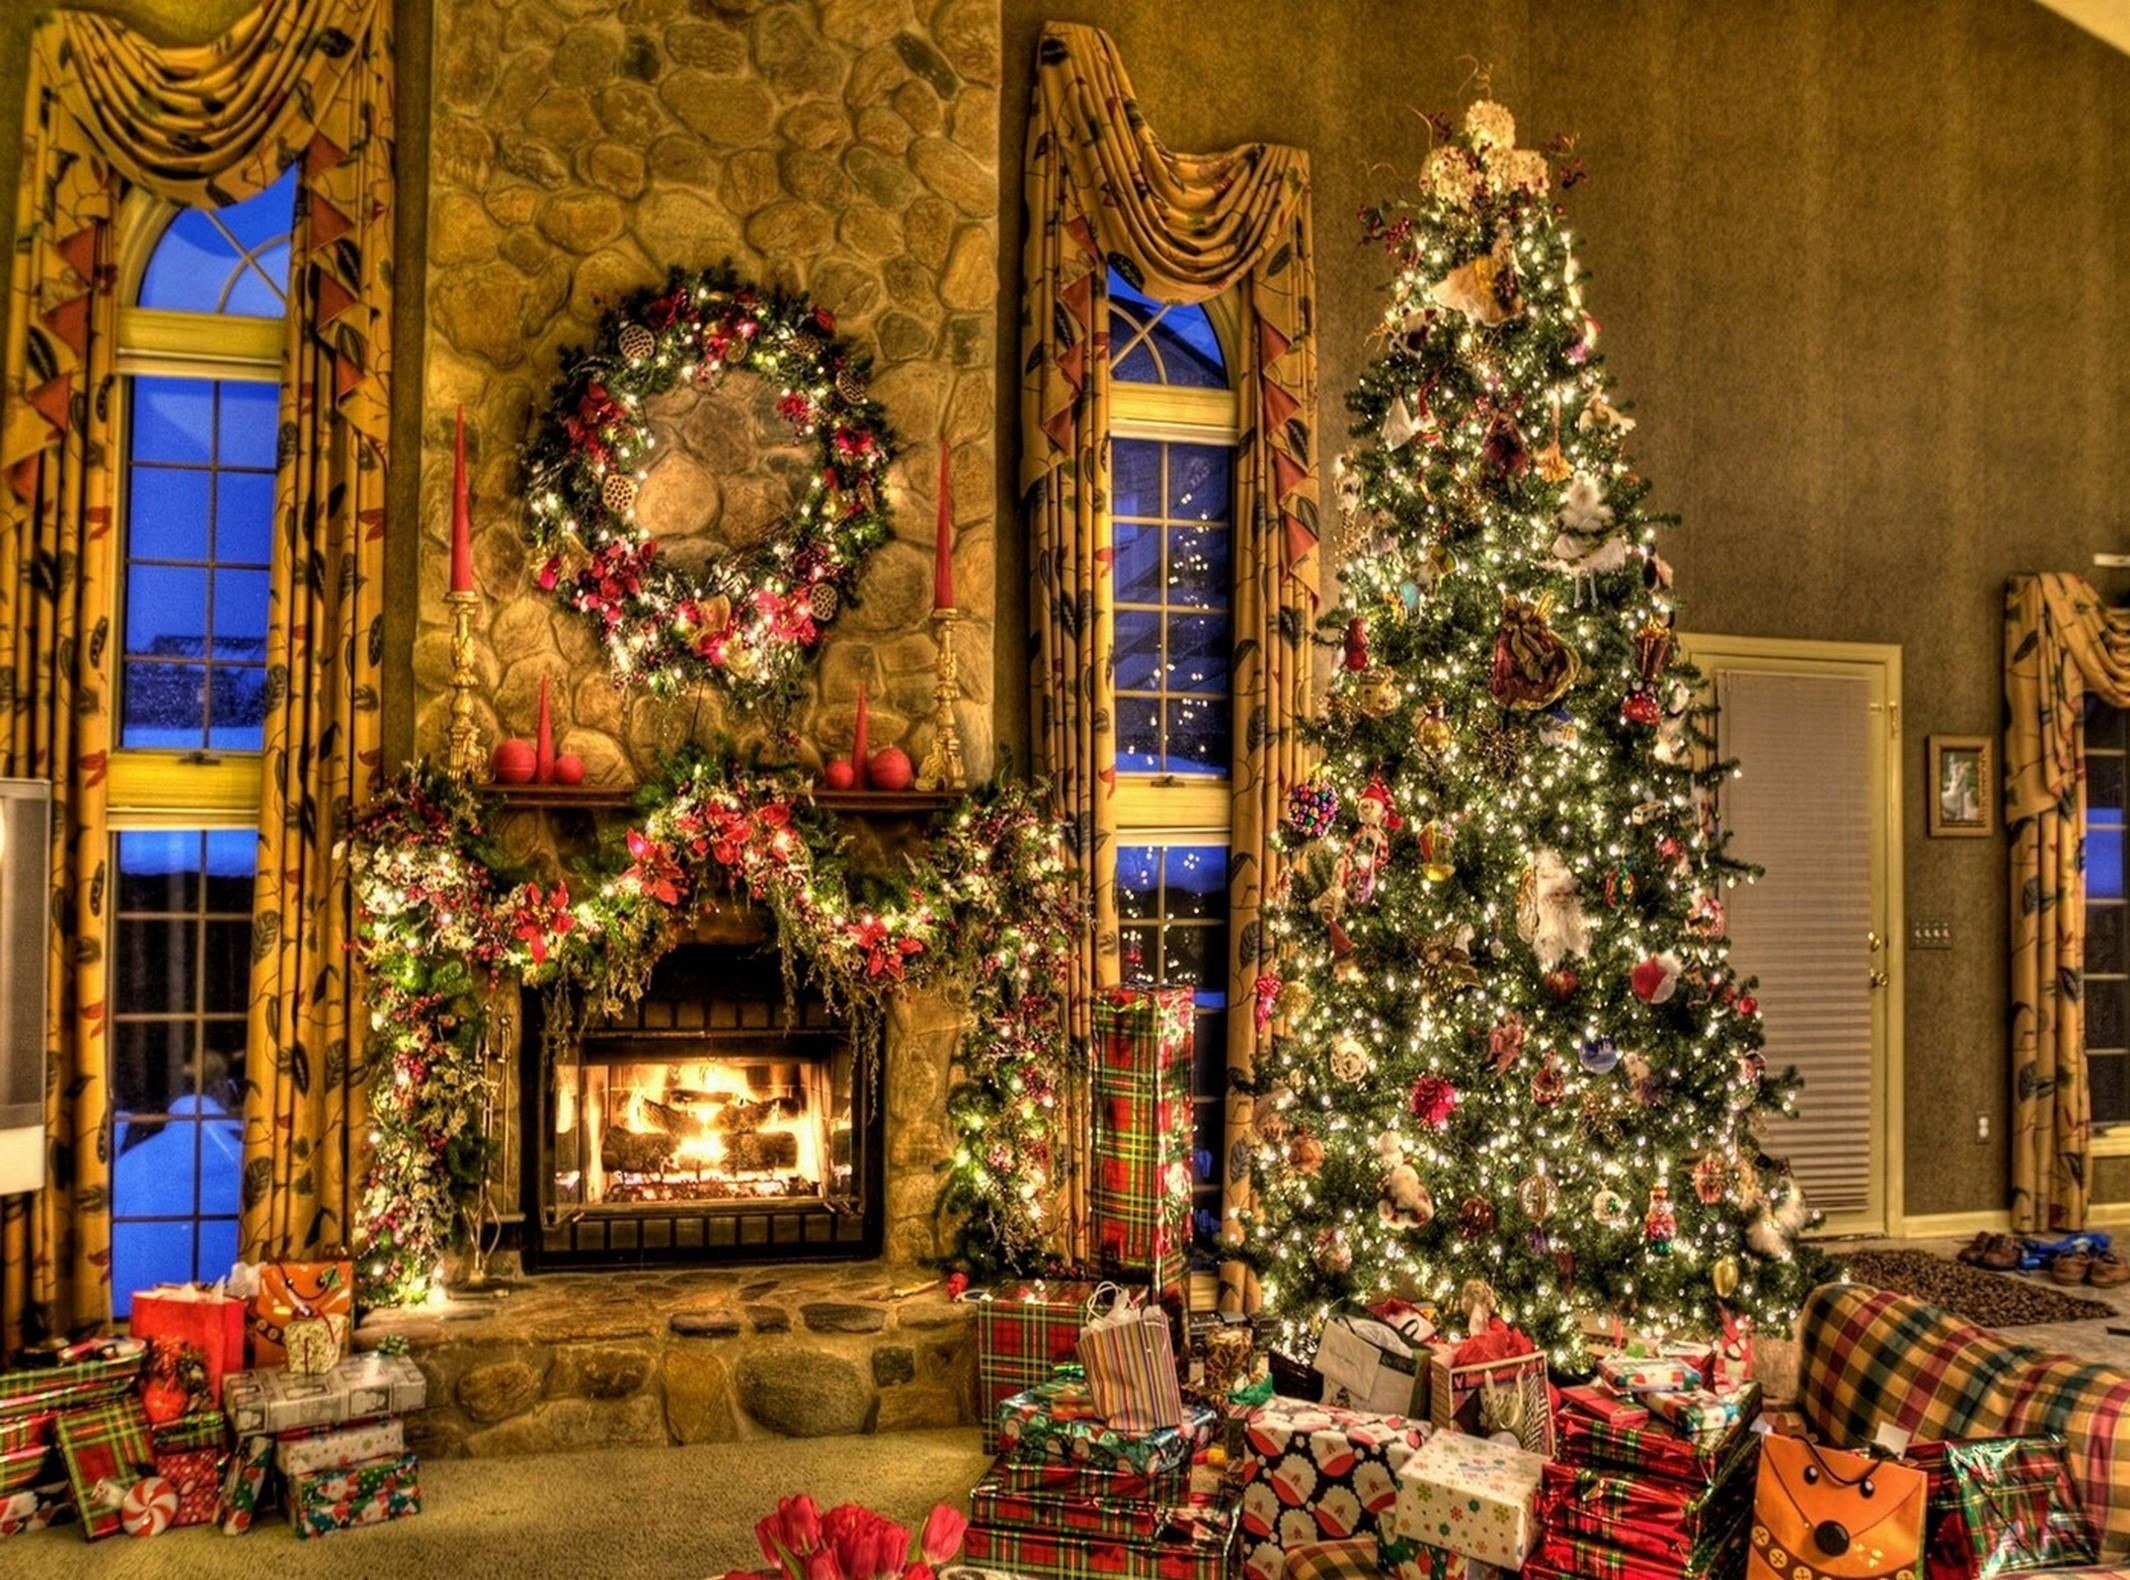 69 Christmas Fireplace Wallpapers on WallpaperPlay 2130x1580